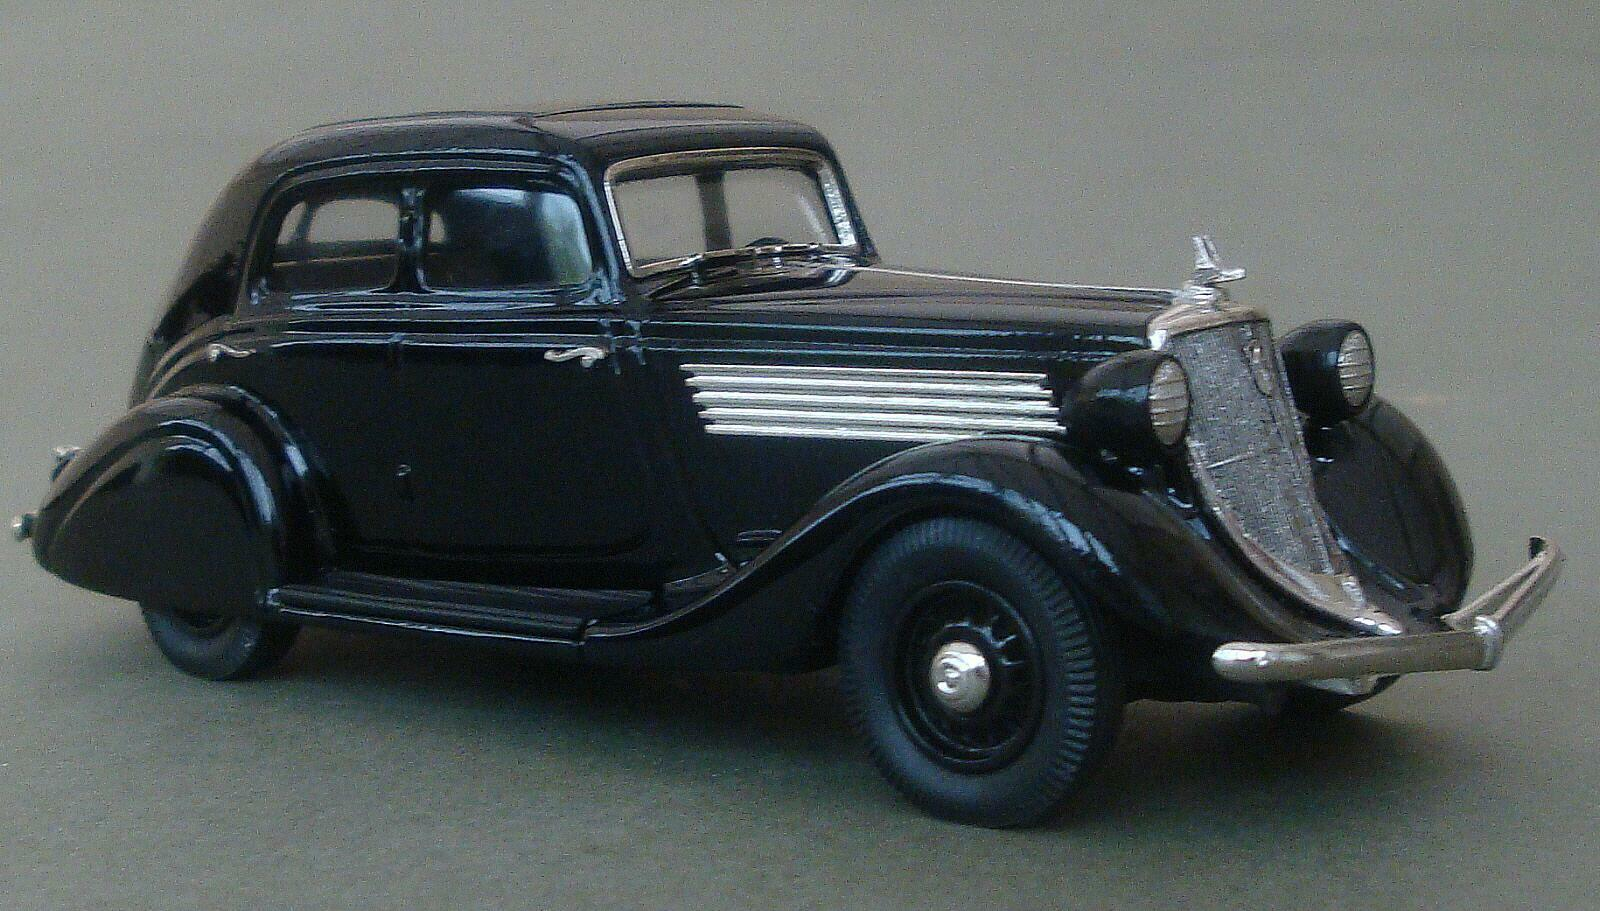 Brooklin modelos 1934 Studebaker comandante Land Cruiser Sedan. nero